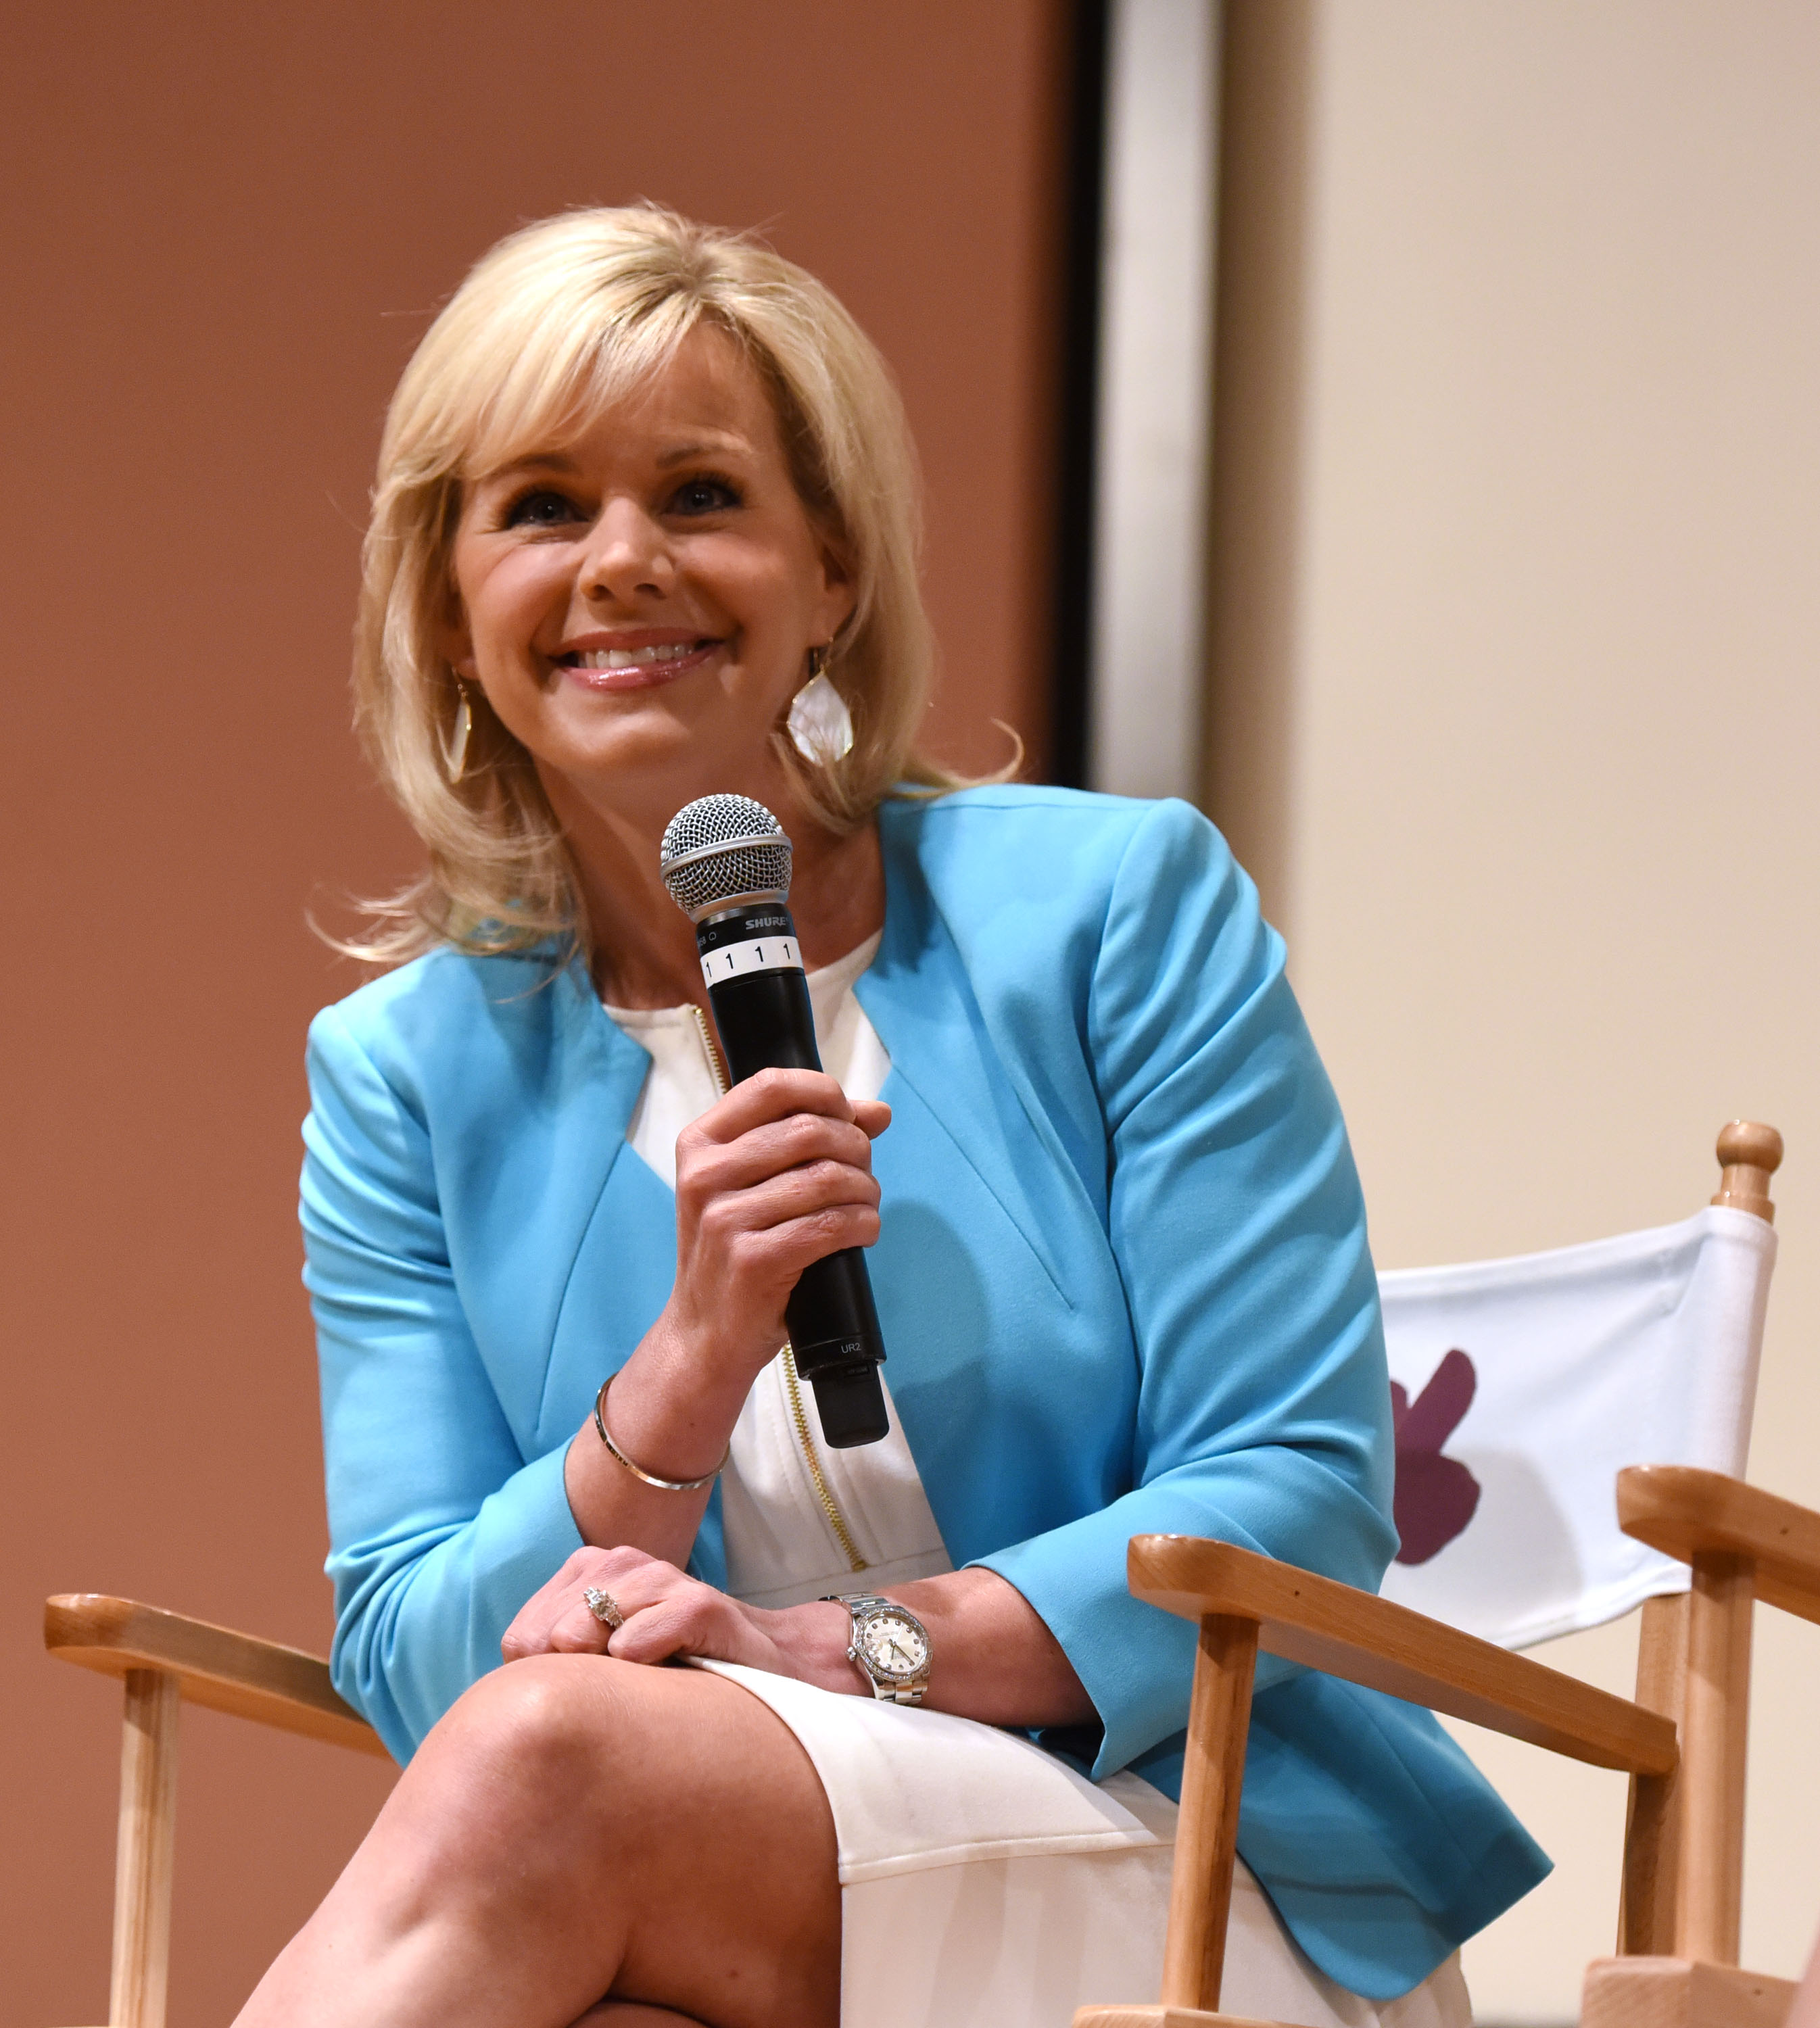 Gretchen Carlson speaks Women at the Top: Female Empowerment in Media Panel at the 2016 Greenwich International Film Festival in Greenwich, Conn., on June 12, 2016.